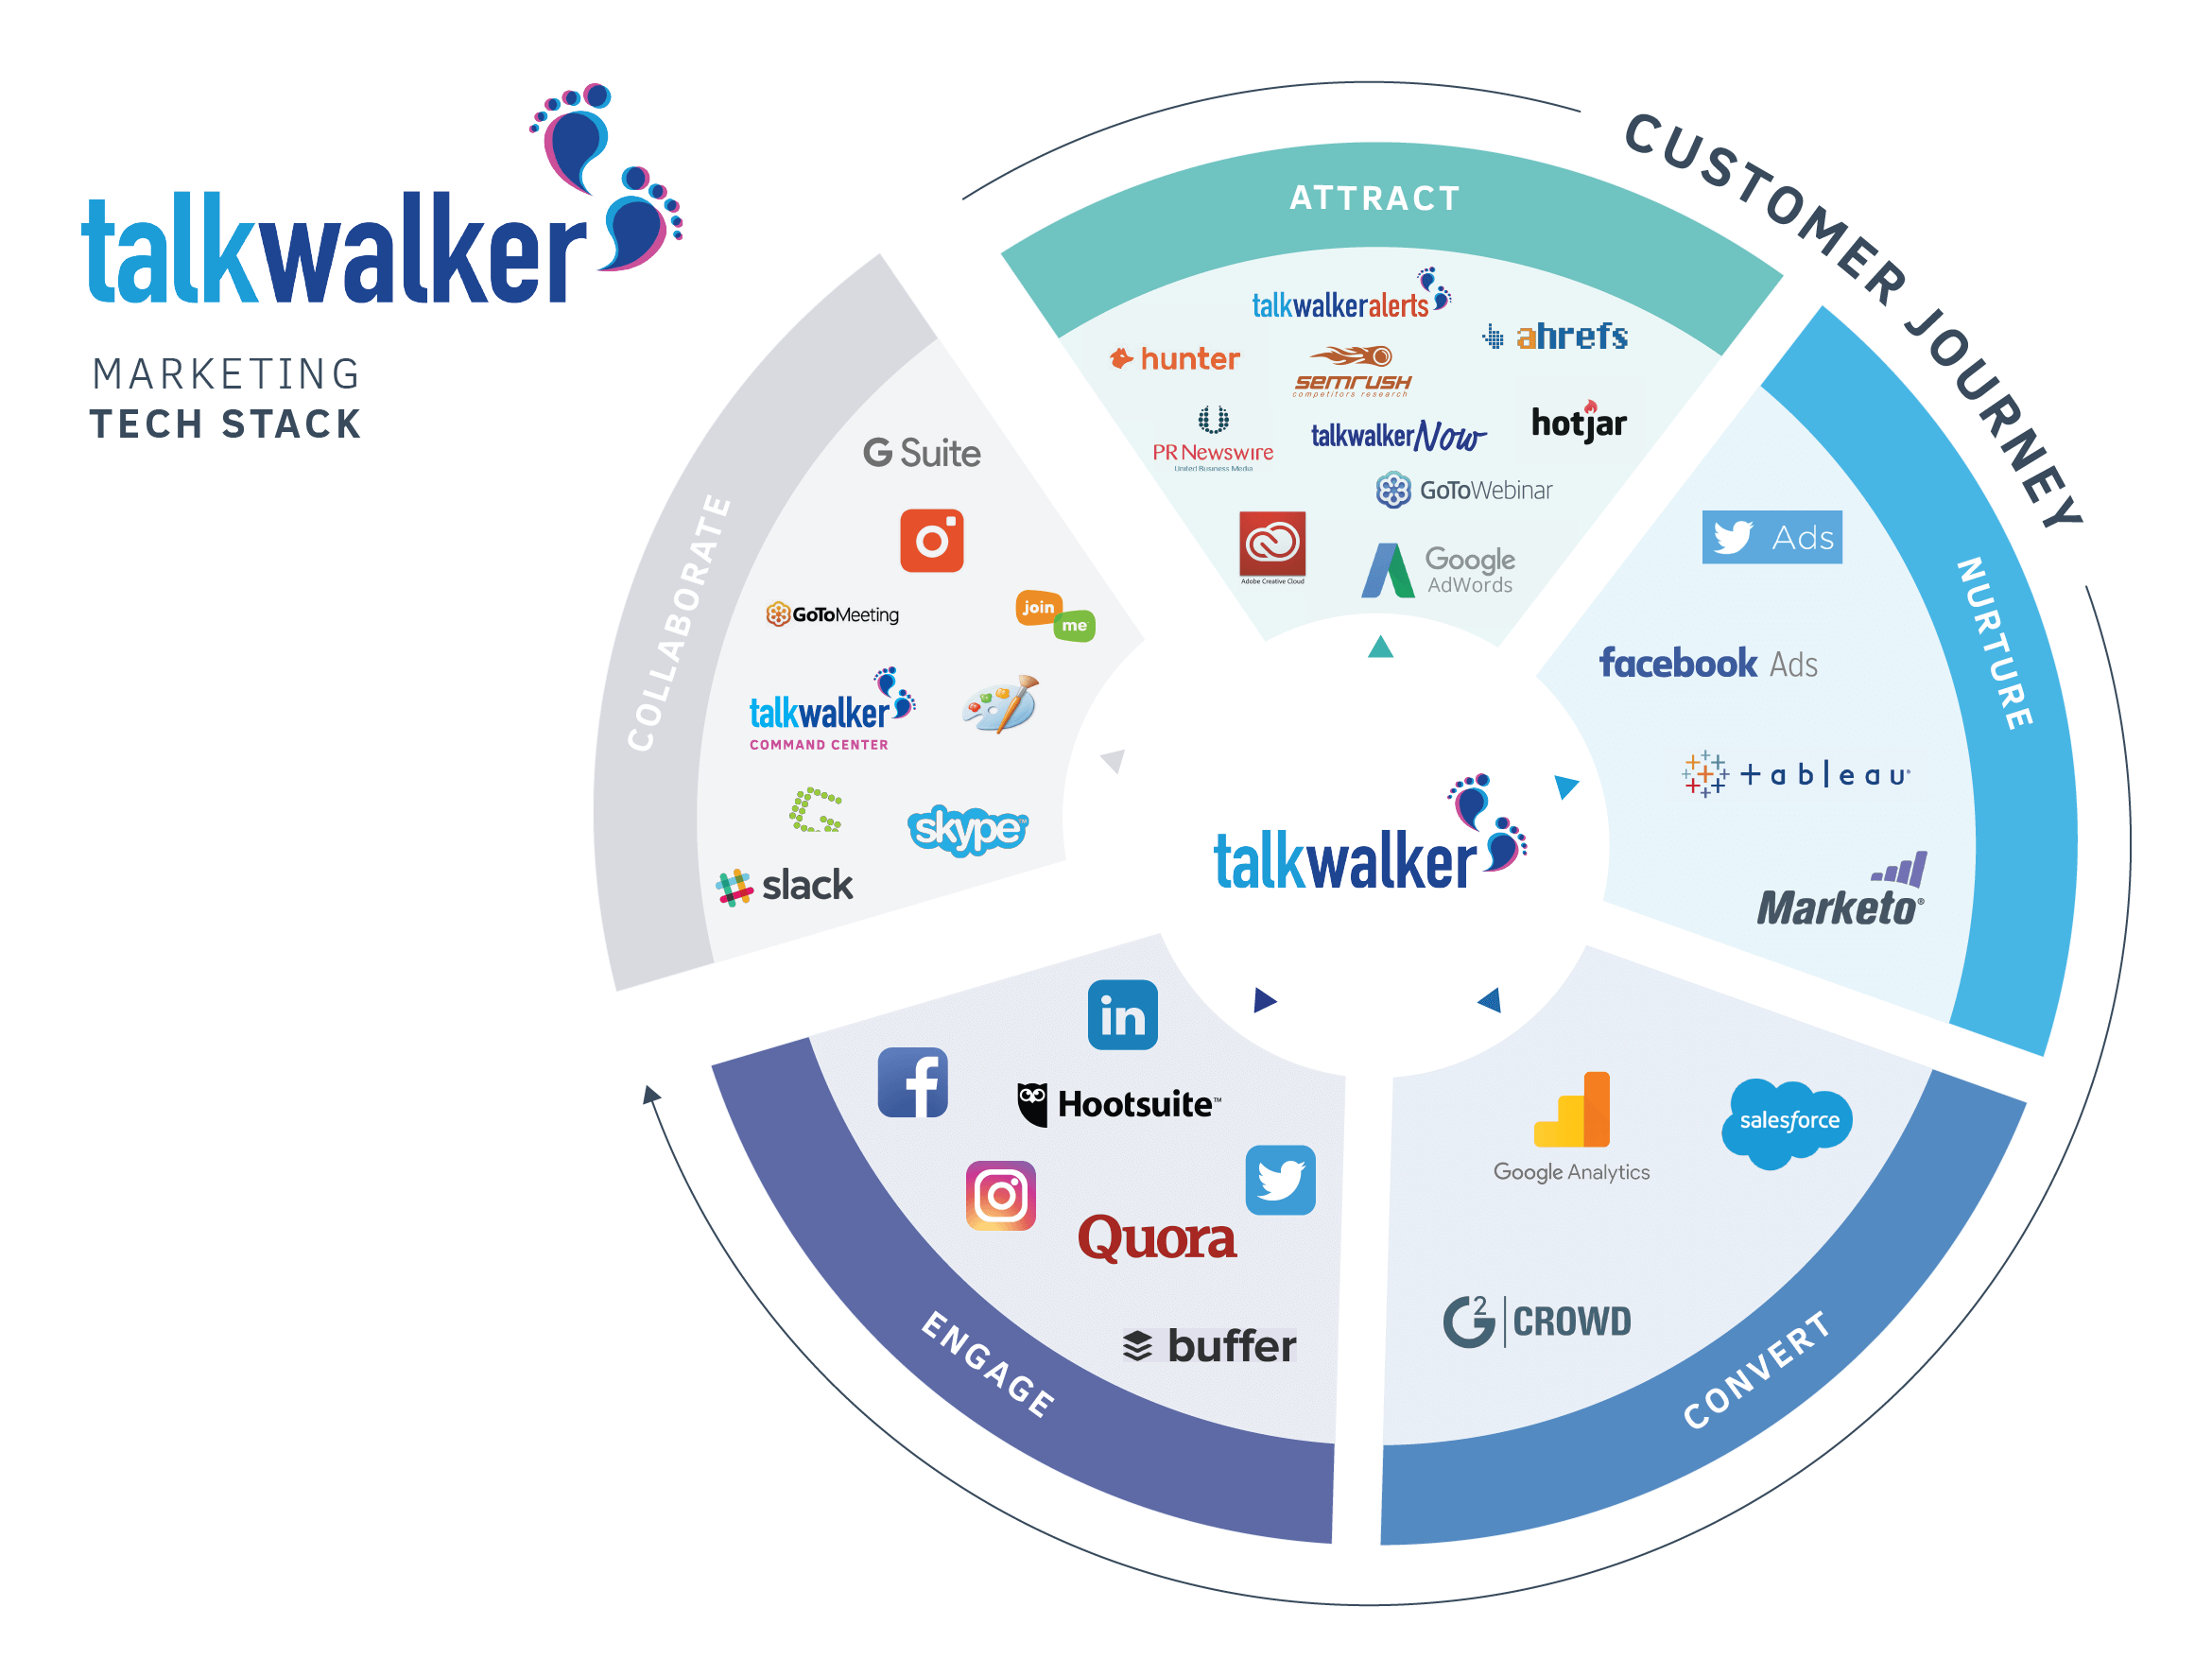 Marketing Tech Stack